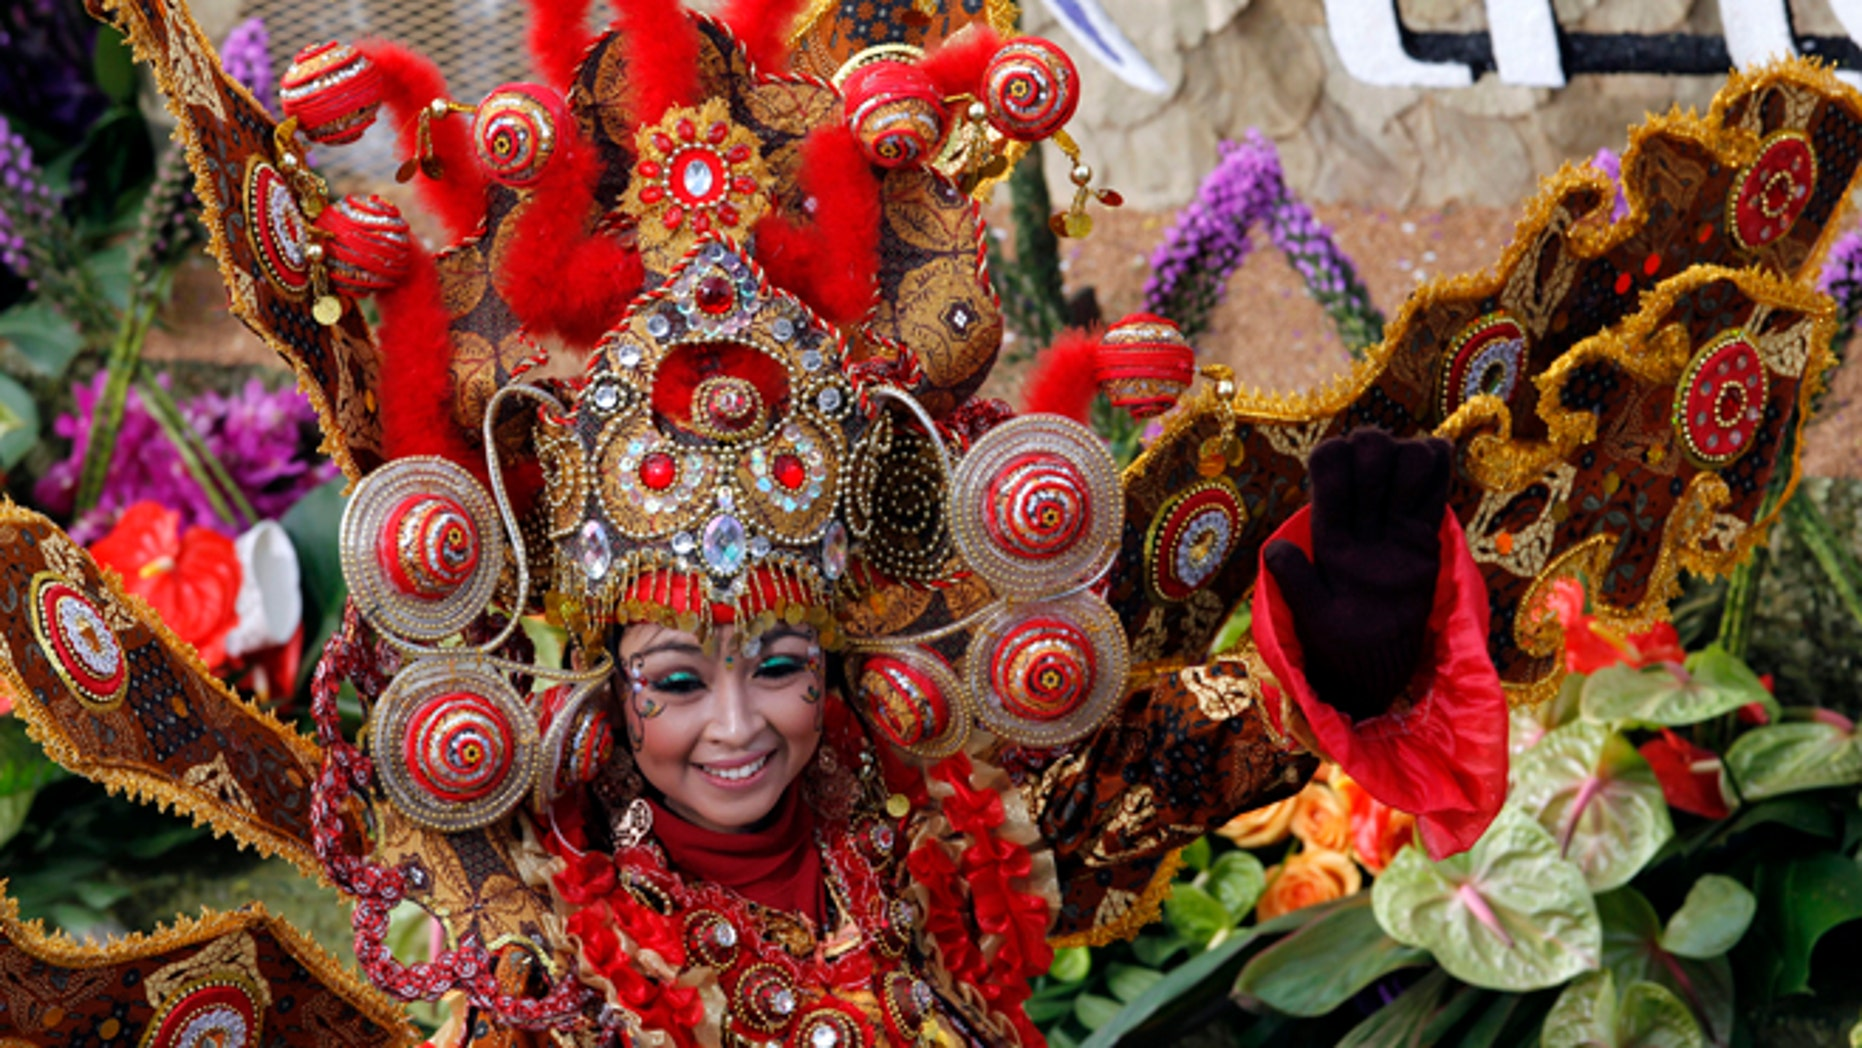 """Jan. 1, 2013: A woman smiles from the float """"Wonderful Indonesia"""" from the Ministry of Tourism and Creative Economies, Republic of Indonesia_the winner of the Presidents trophy for the most innovative use and presentation of flowers in the 124th Rose Parade in Pasadena, Calif."""